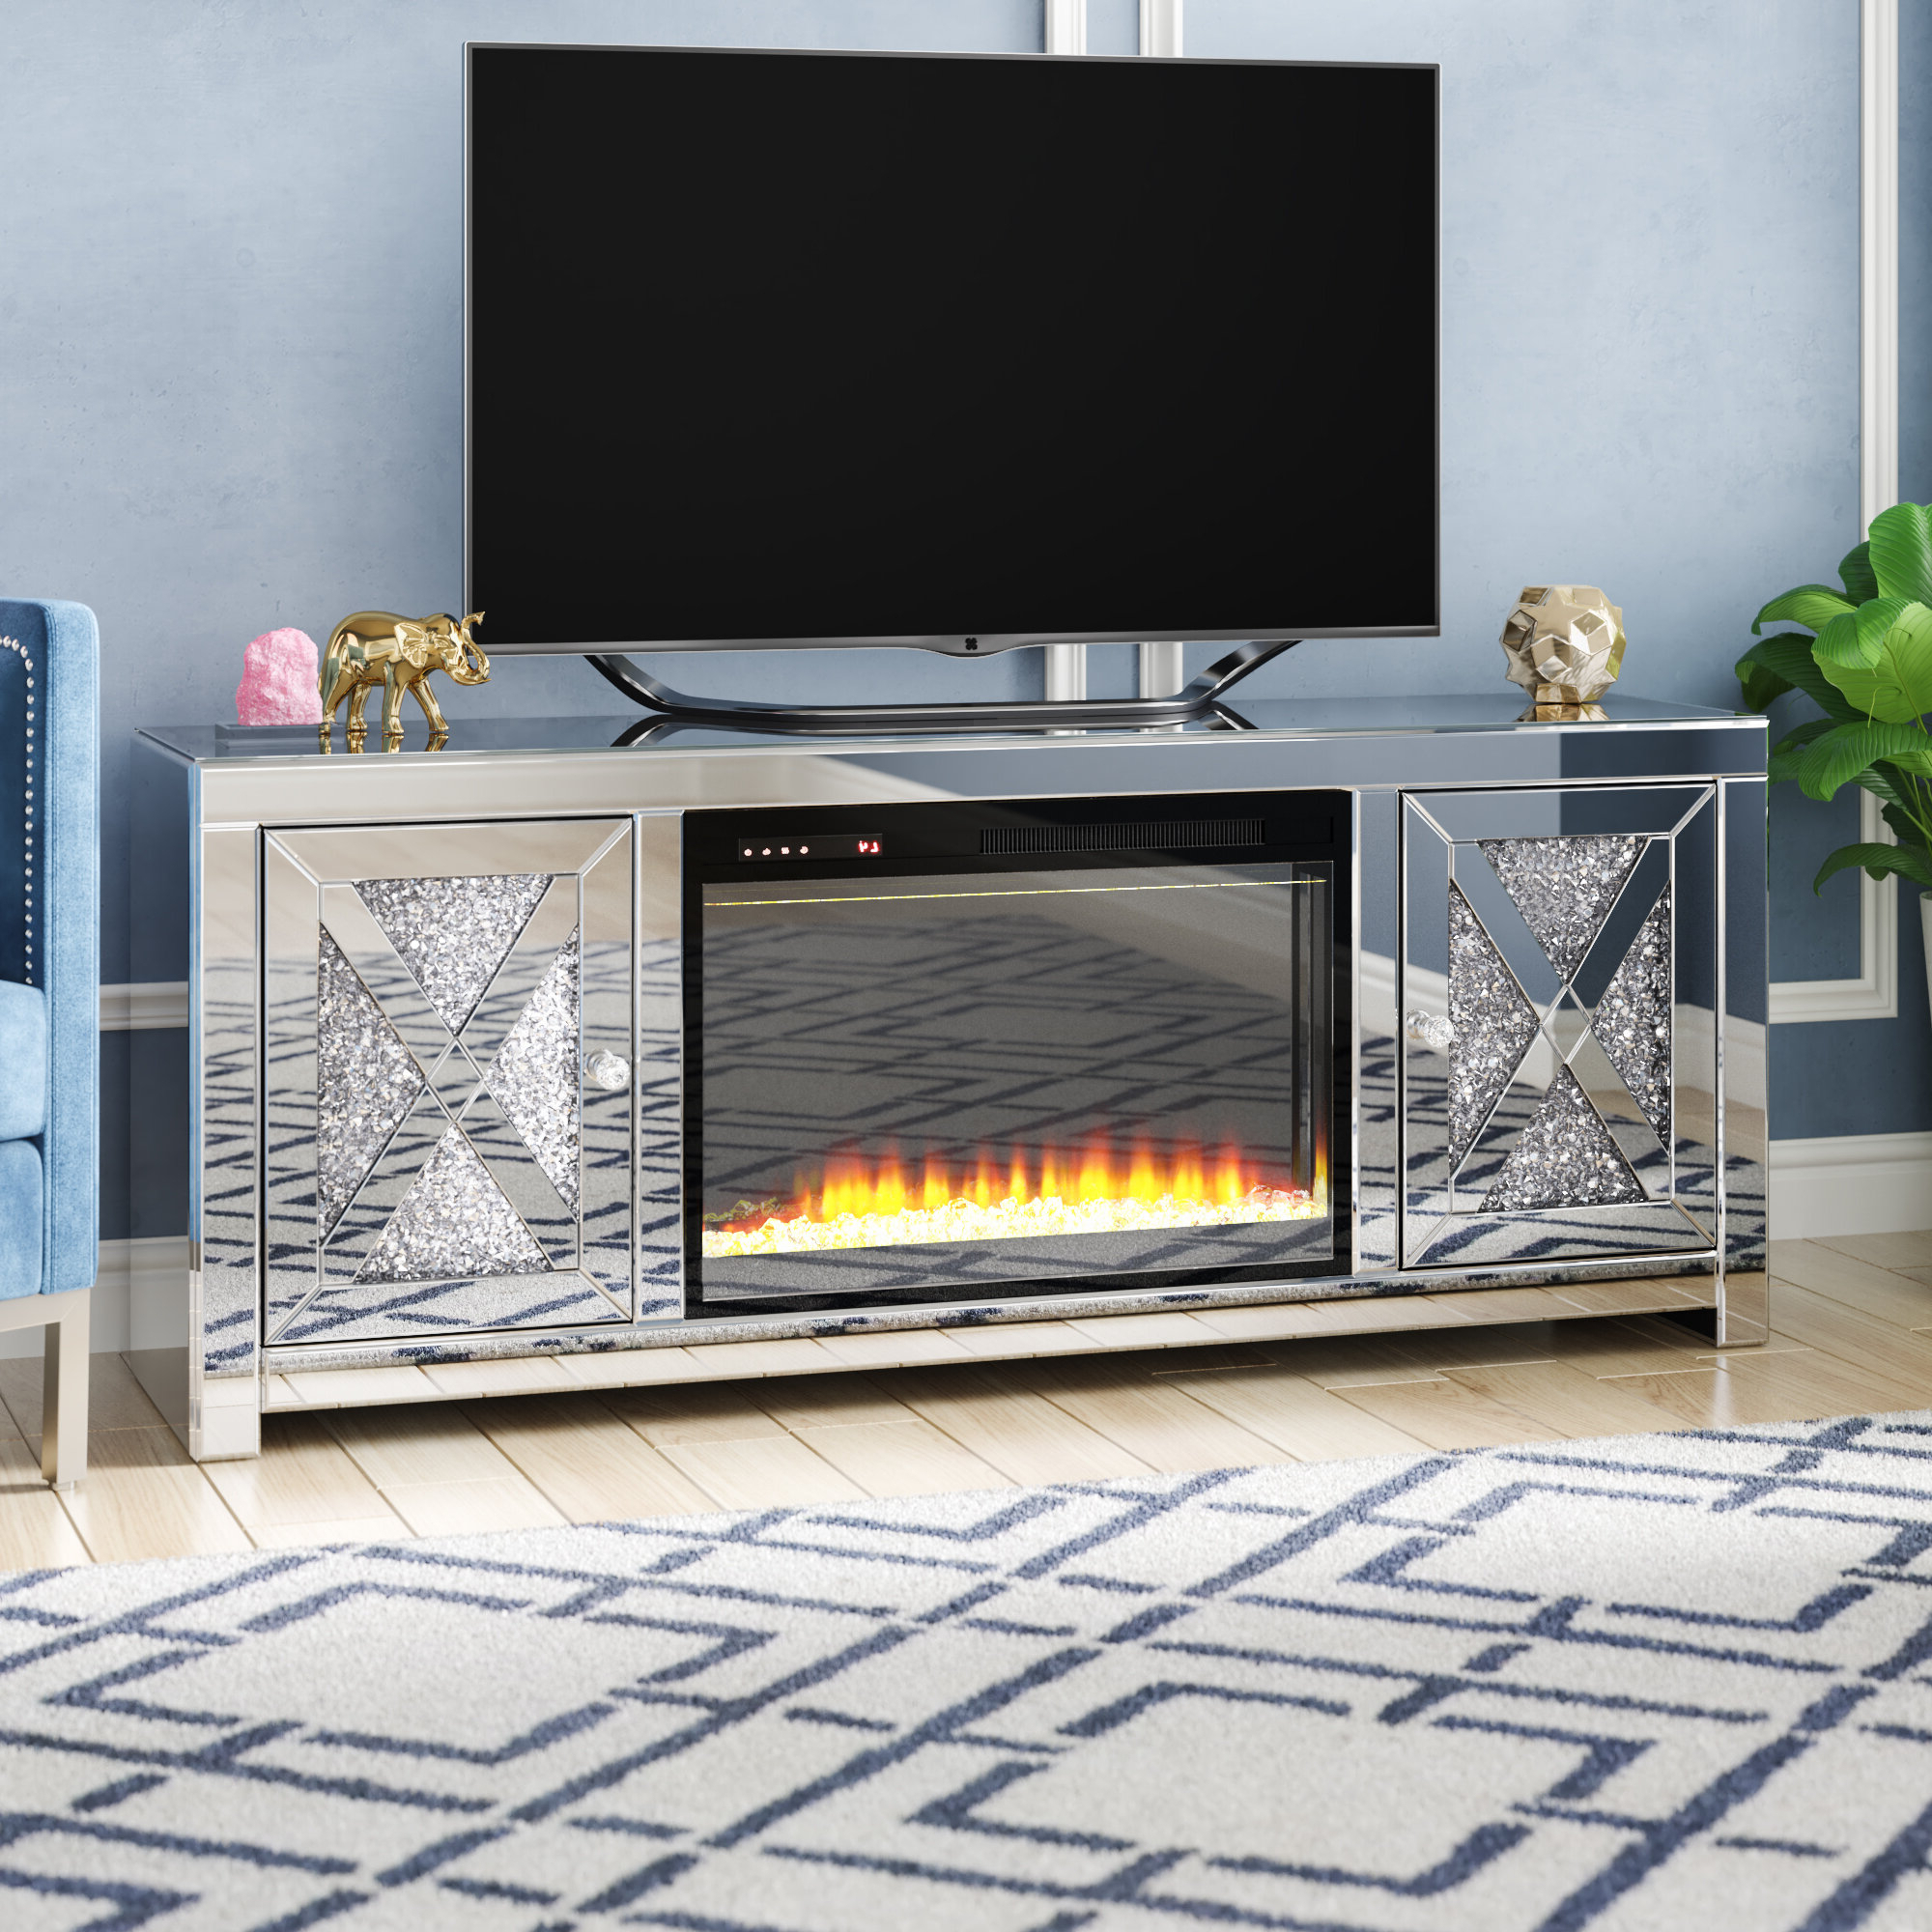 """65 Inch Tv Stand With Fireplace – Ideas On Foter Regarding 2017 Hetton Tv Stands For Tvs Up To 70"""" With Fireplace Included (View 22 of 25)"""